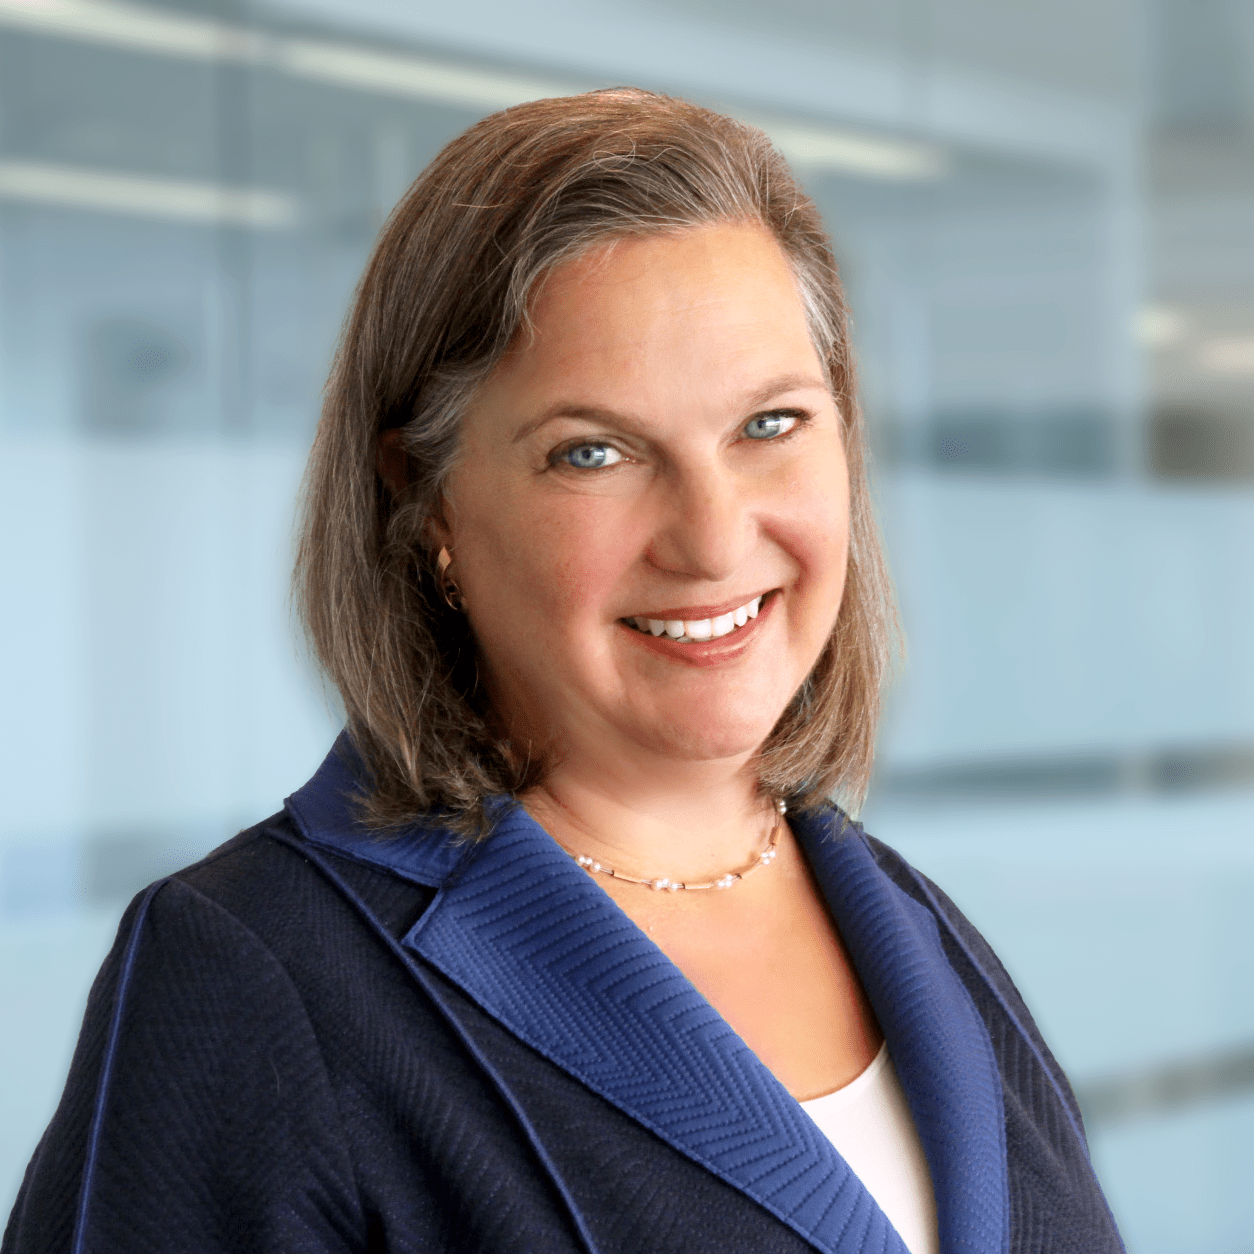 Victoria Nuland, Chief Executive Officer, Center for a New American Security